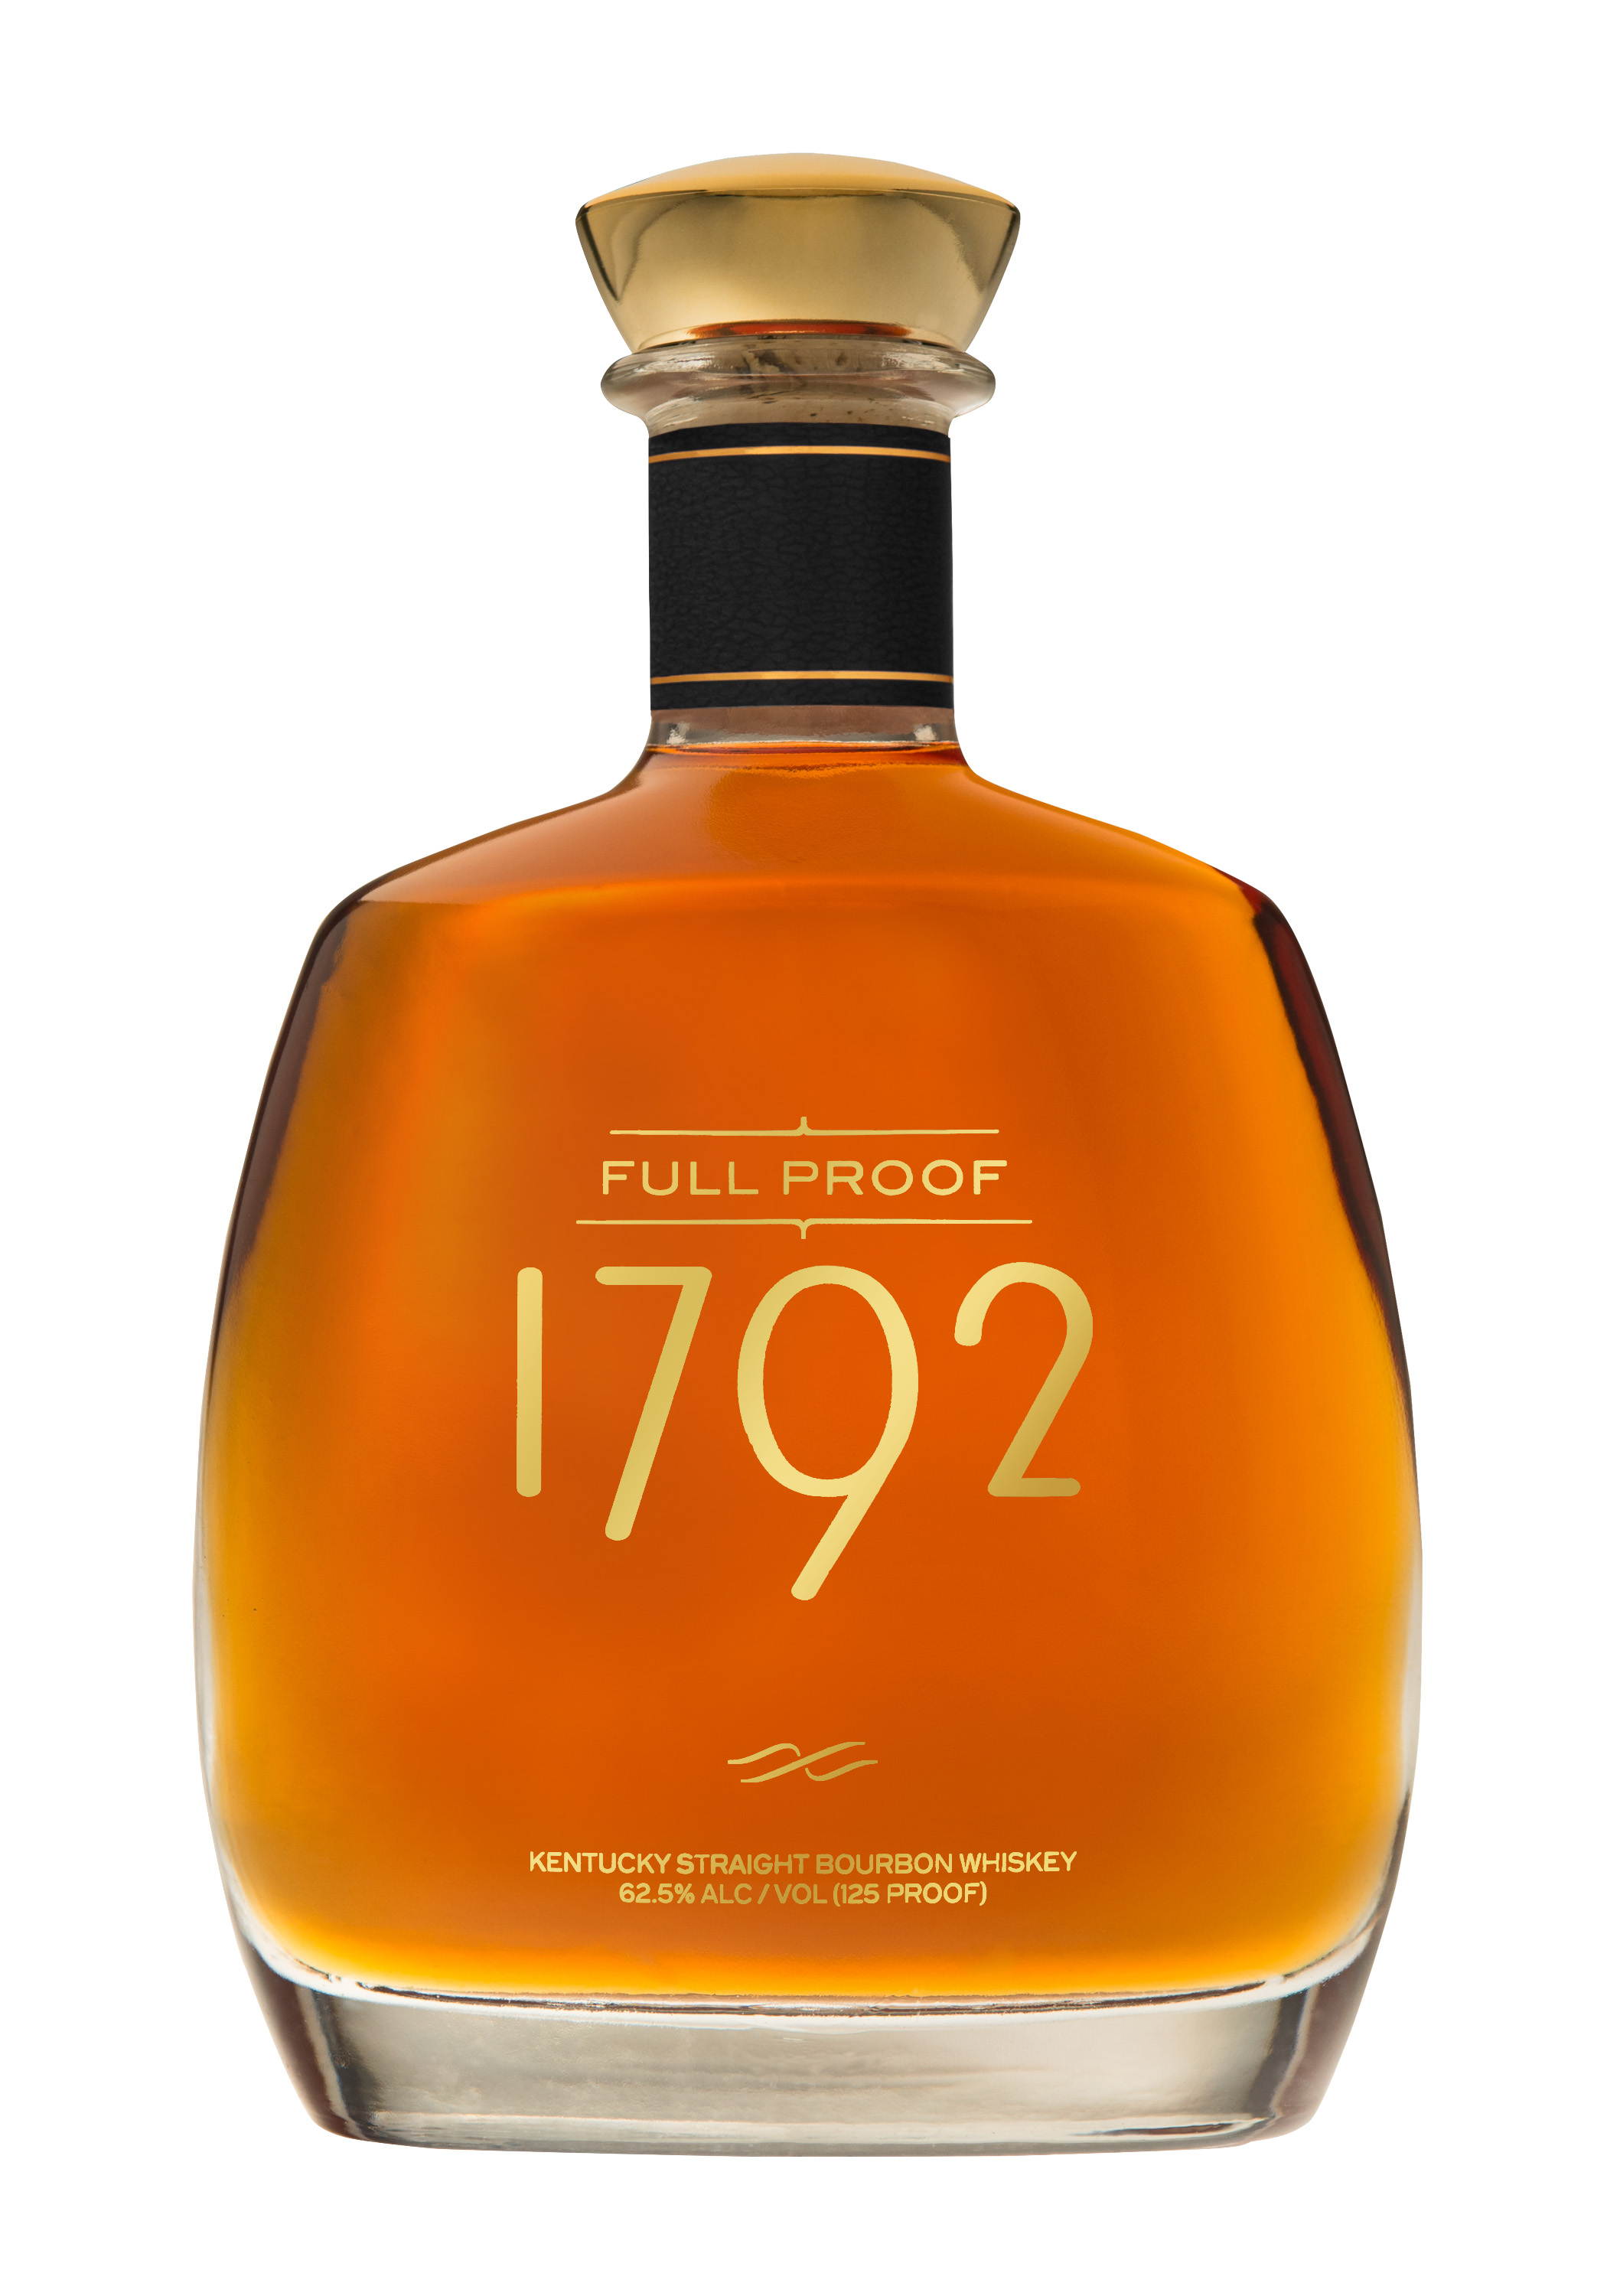 1792-Full-Proof-Bottle.jpg